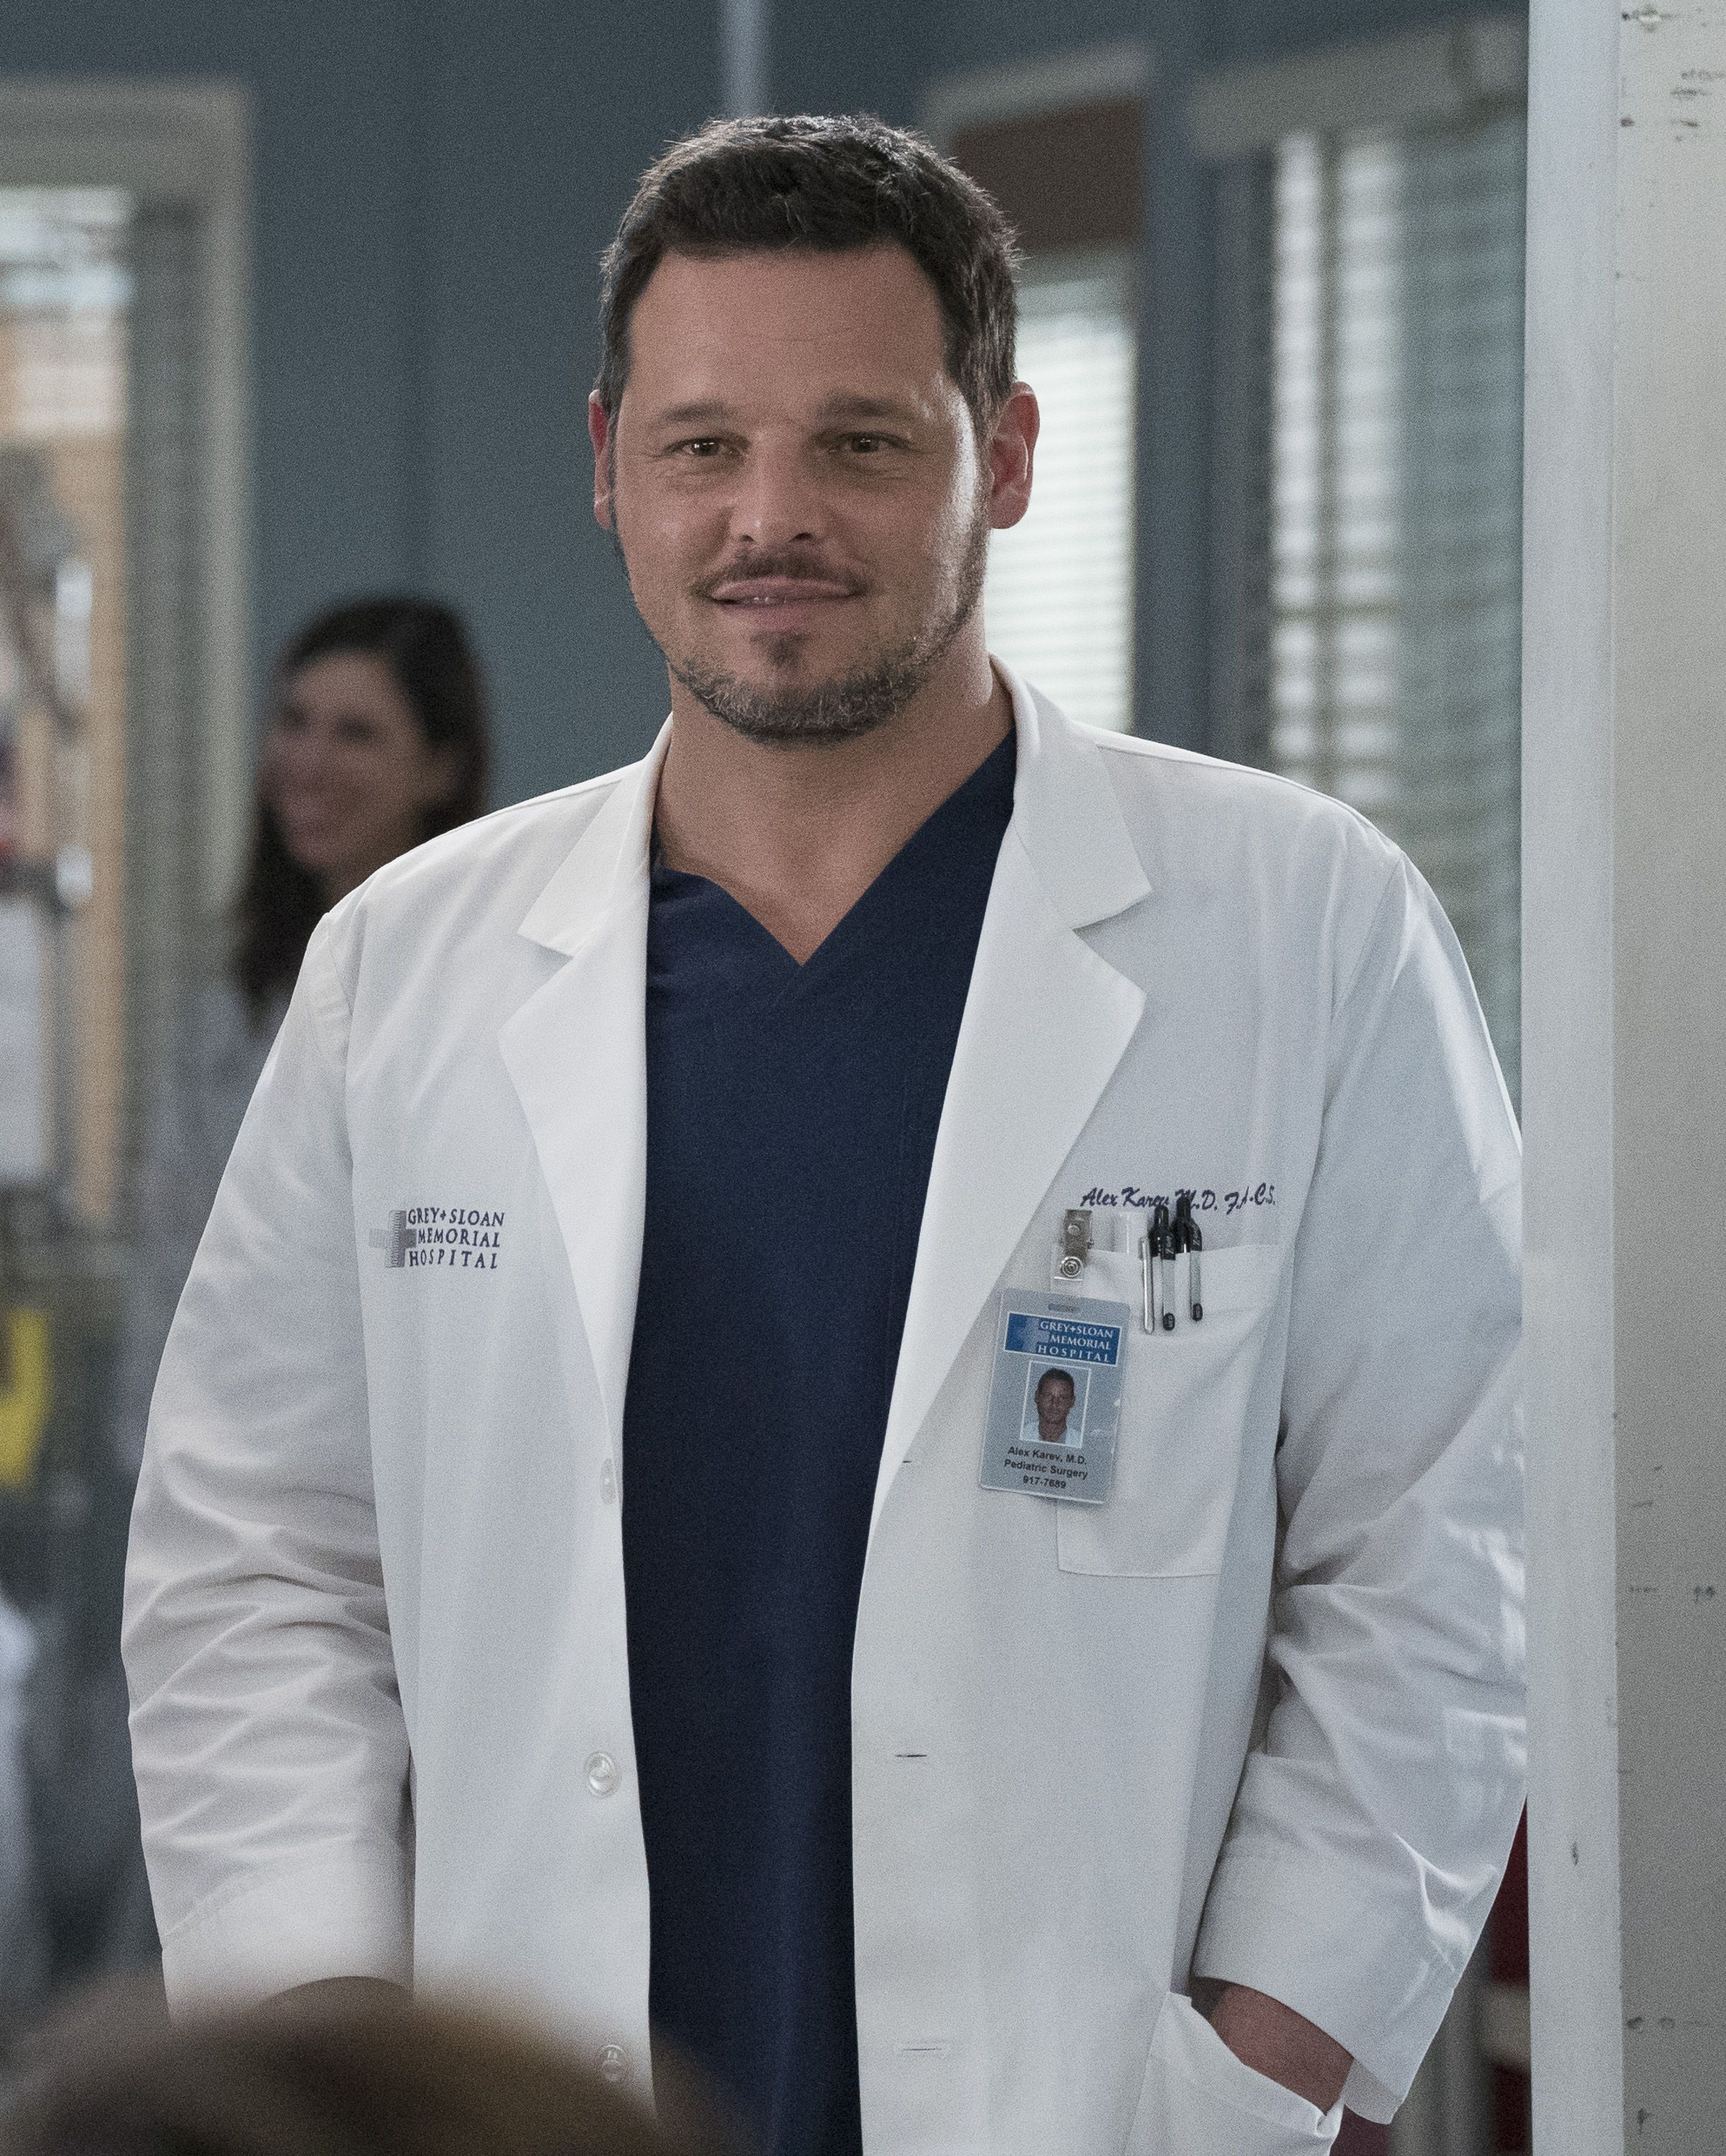 Greys Anatomy PHOTOS Greys Anatomy Season 15 Merediths New Man ...